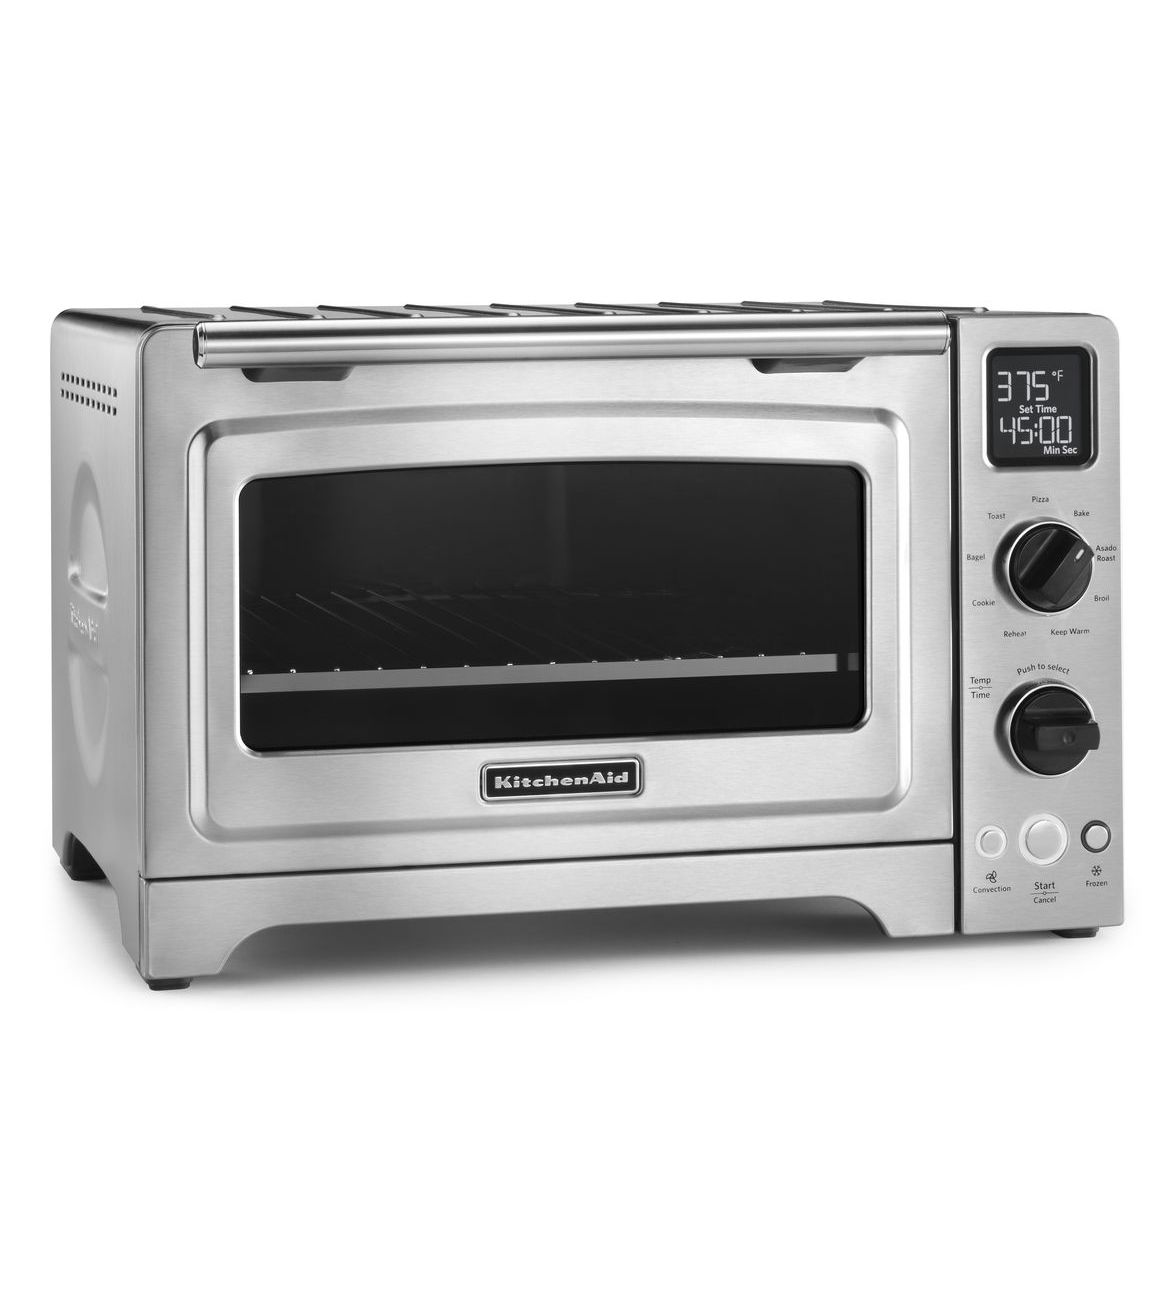 Oster Convection Countertop Oven Reviews Best Convection Oven Reviews 2019 Countertop Models Rated